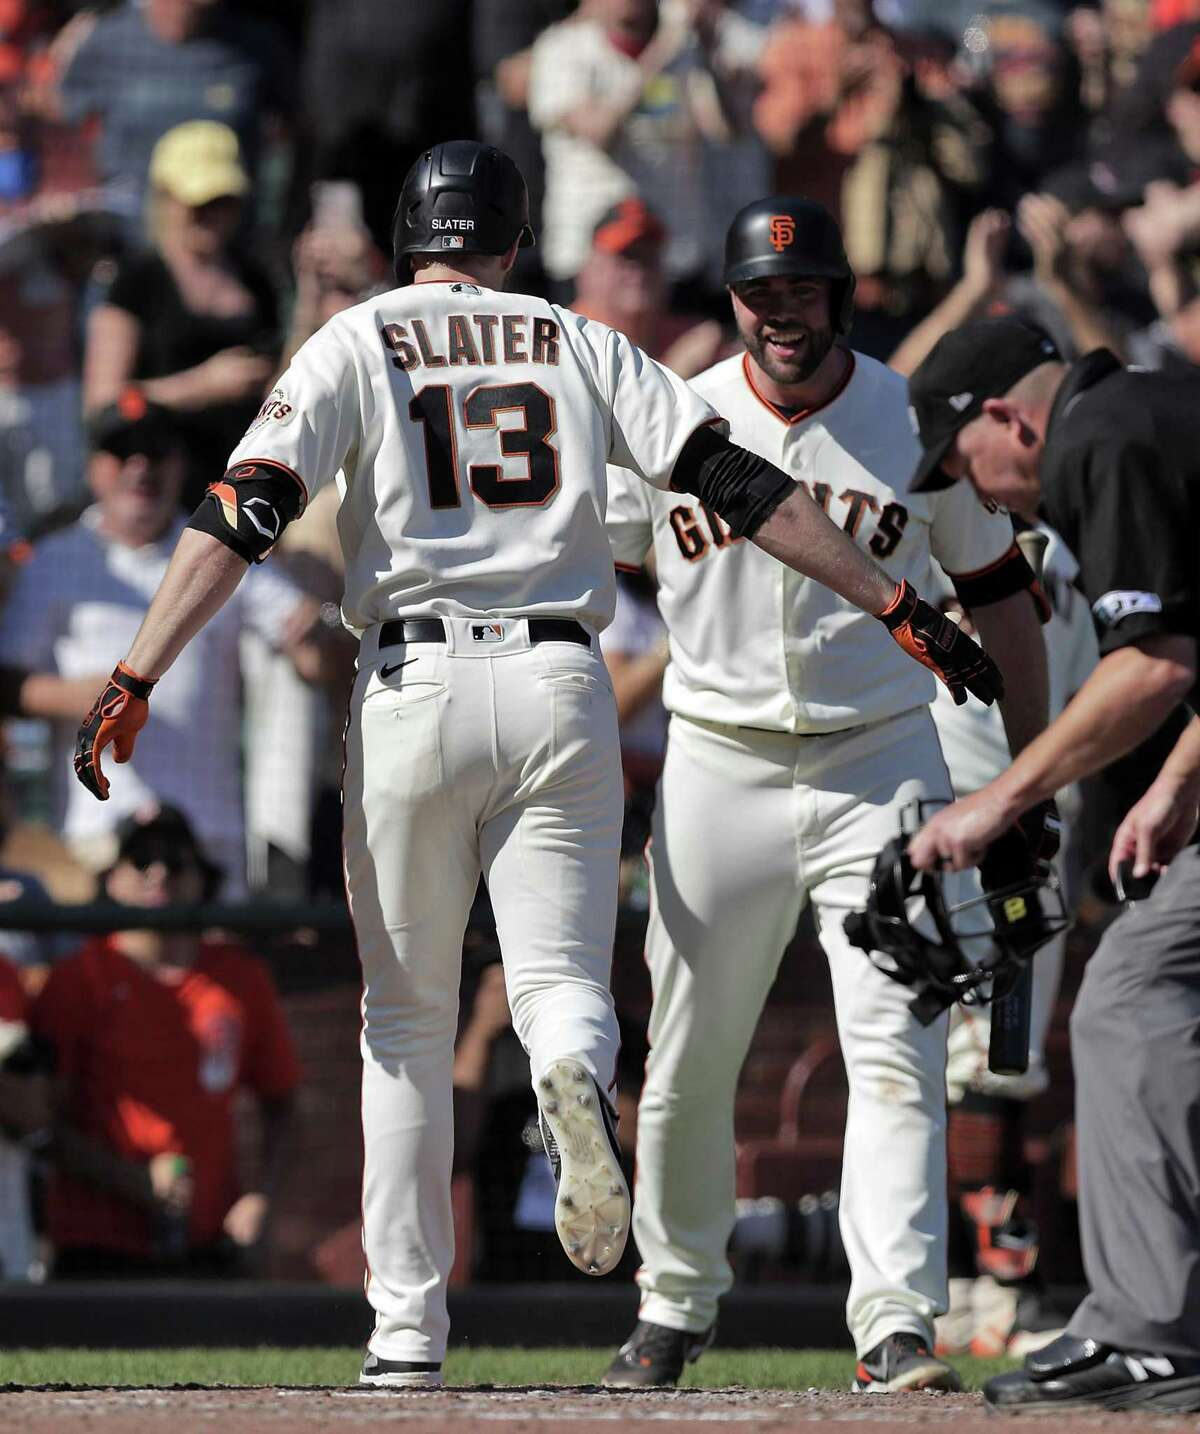 Austin Slater (13) scores on his solo homerun in the sixrth inning as the San Francisco Giants played the San Diego Padres at Oracle Park in San Francisco, Calif., on Saturday, October 2, 2021.